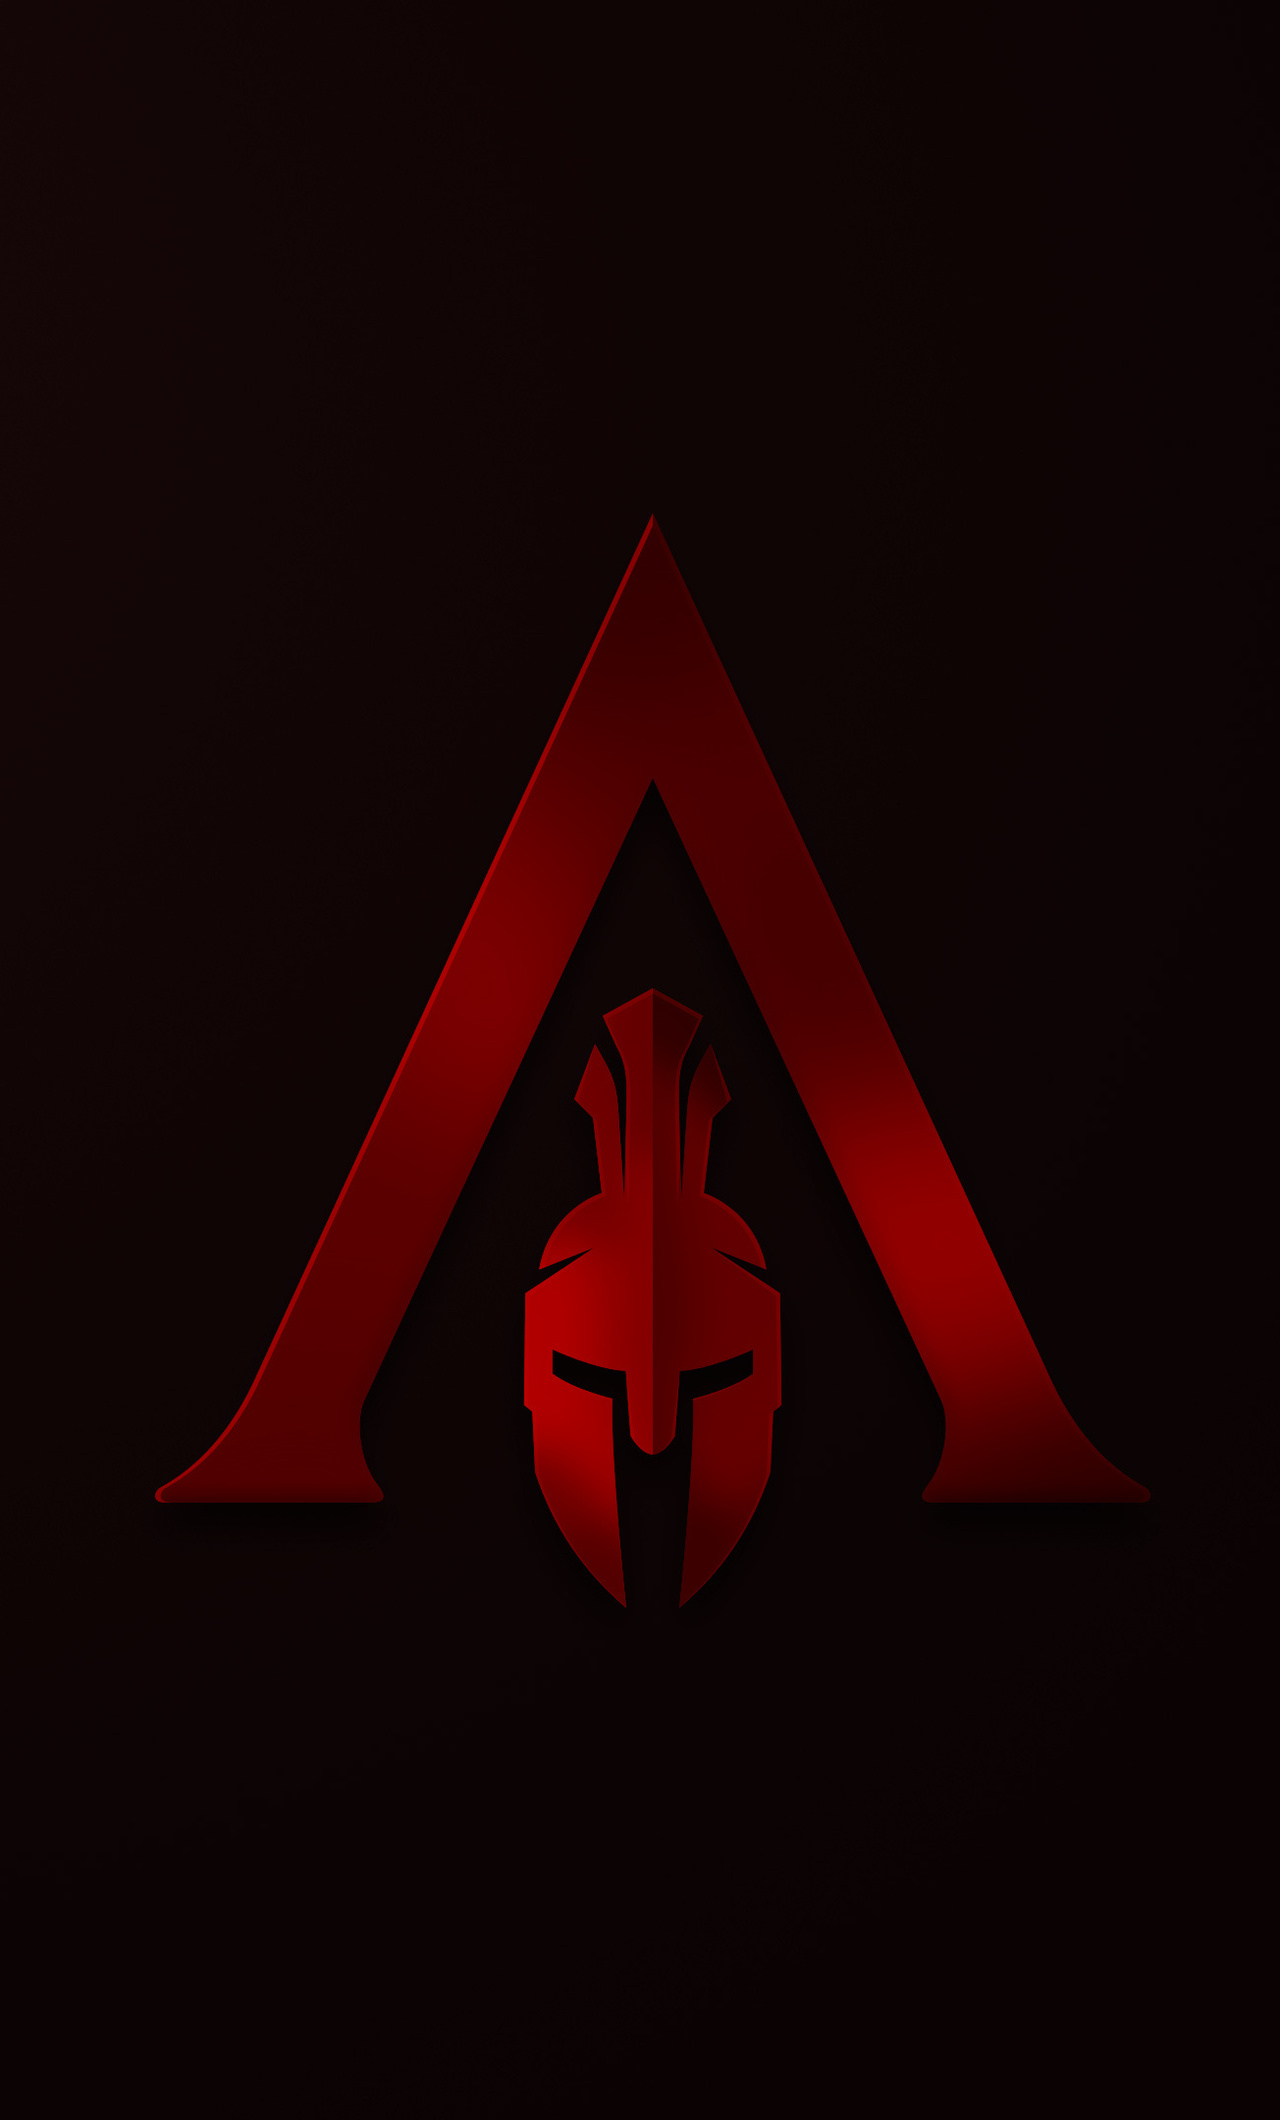 1280x2120 Assassins Creed Odyssey Minimalism Logo 4k Iphone 6 Hd 4k Wallpapers Images Backgrounds Photos And